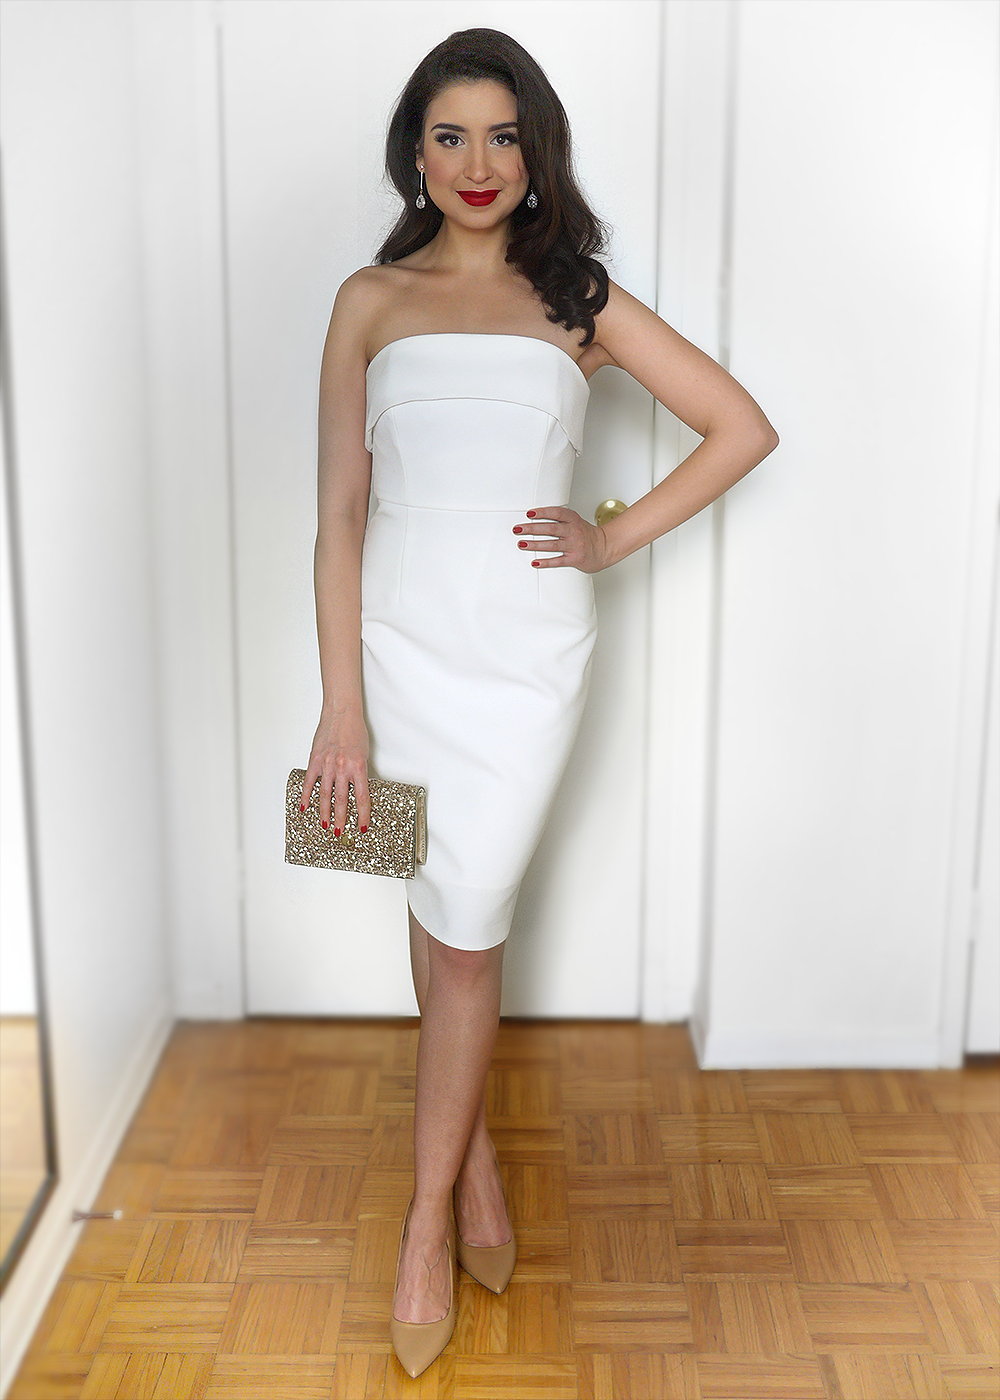 Office Holiday Party Dress: Winter Whites | Sara du Jour